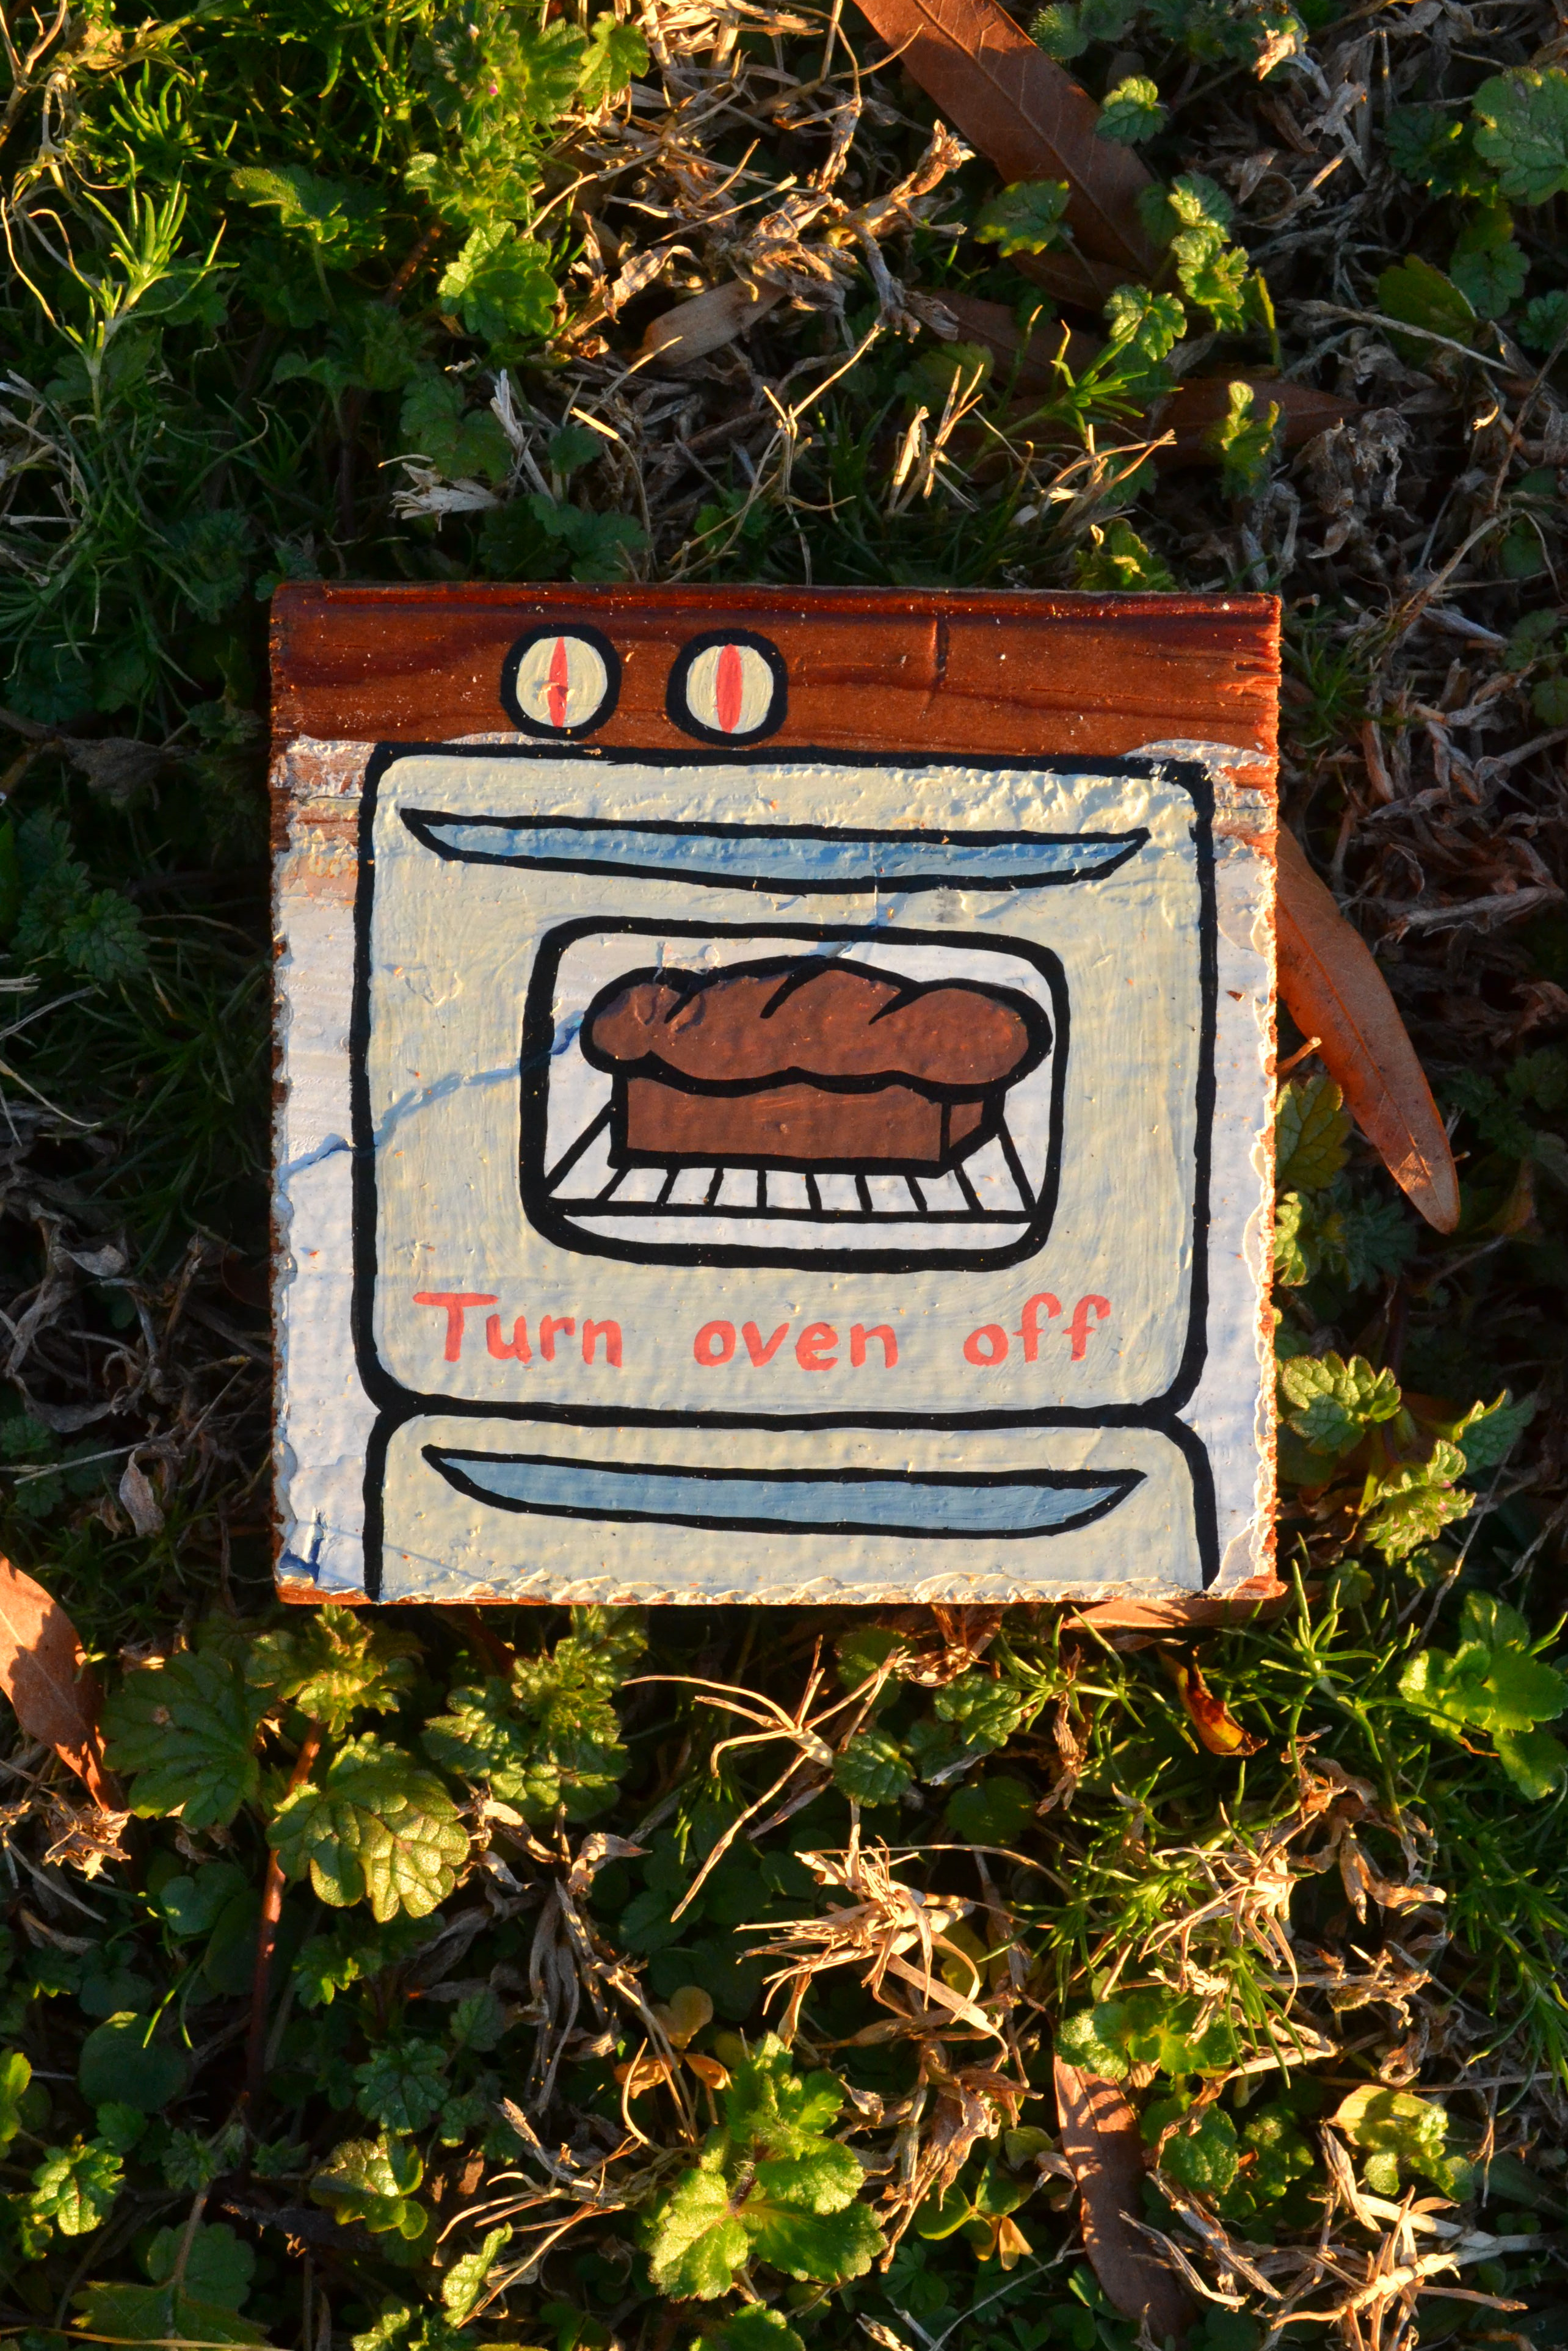 Turn oven off